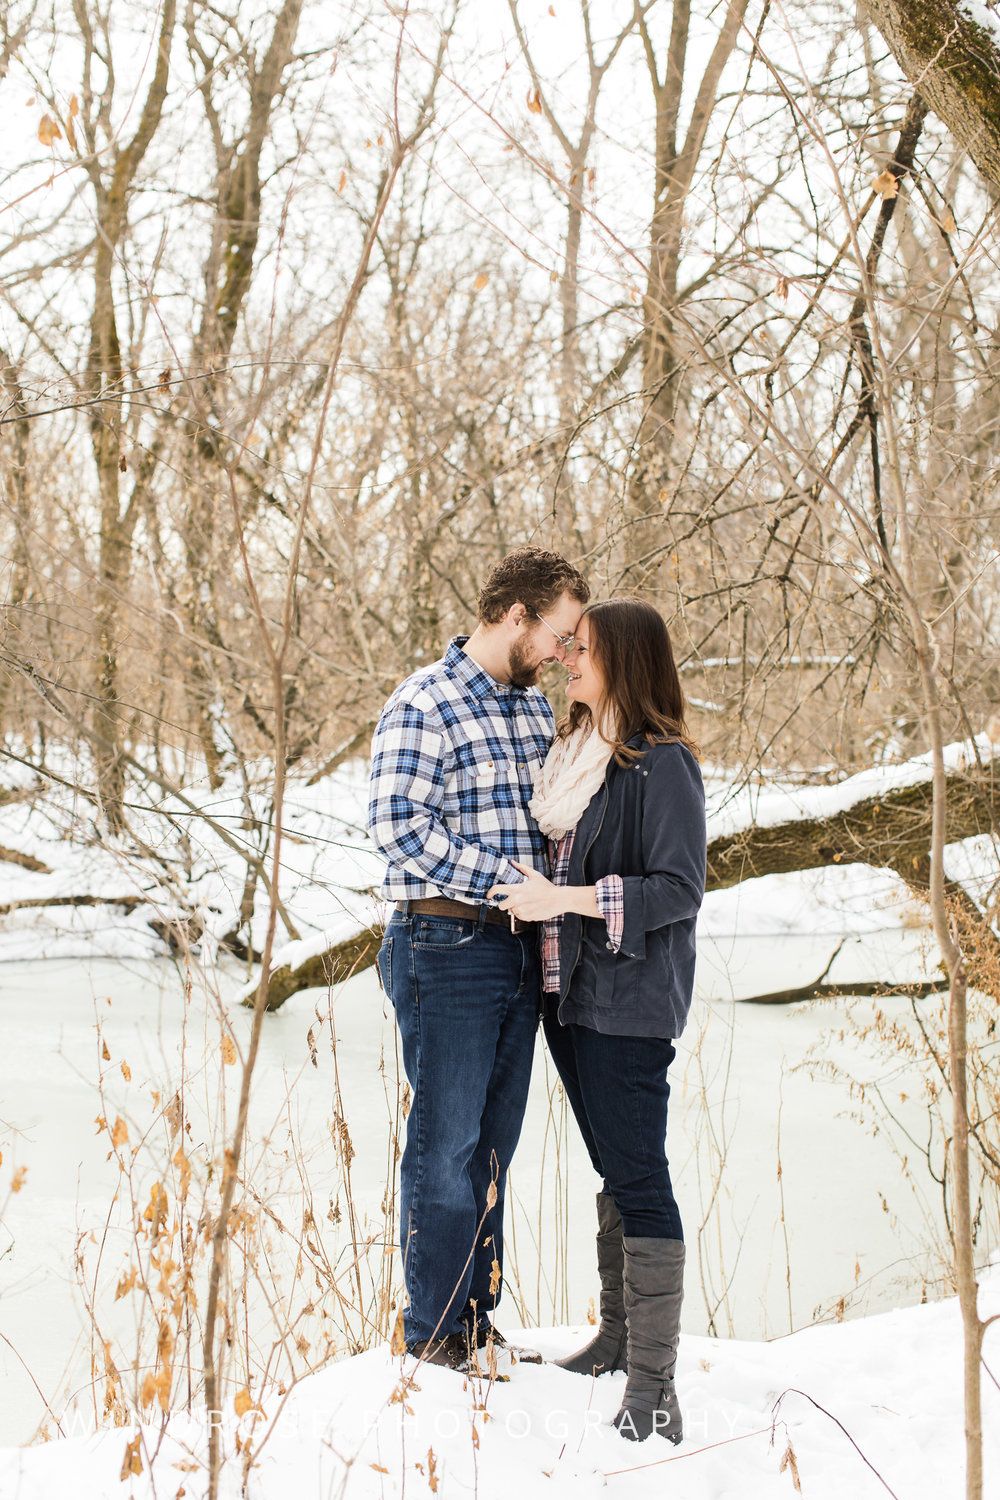 Quarry-Hill-Winter-Engagement-Photo-Session-5.jpg